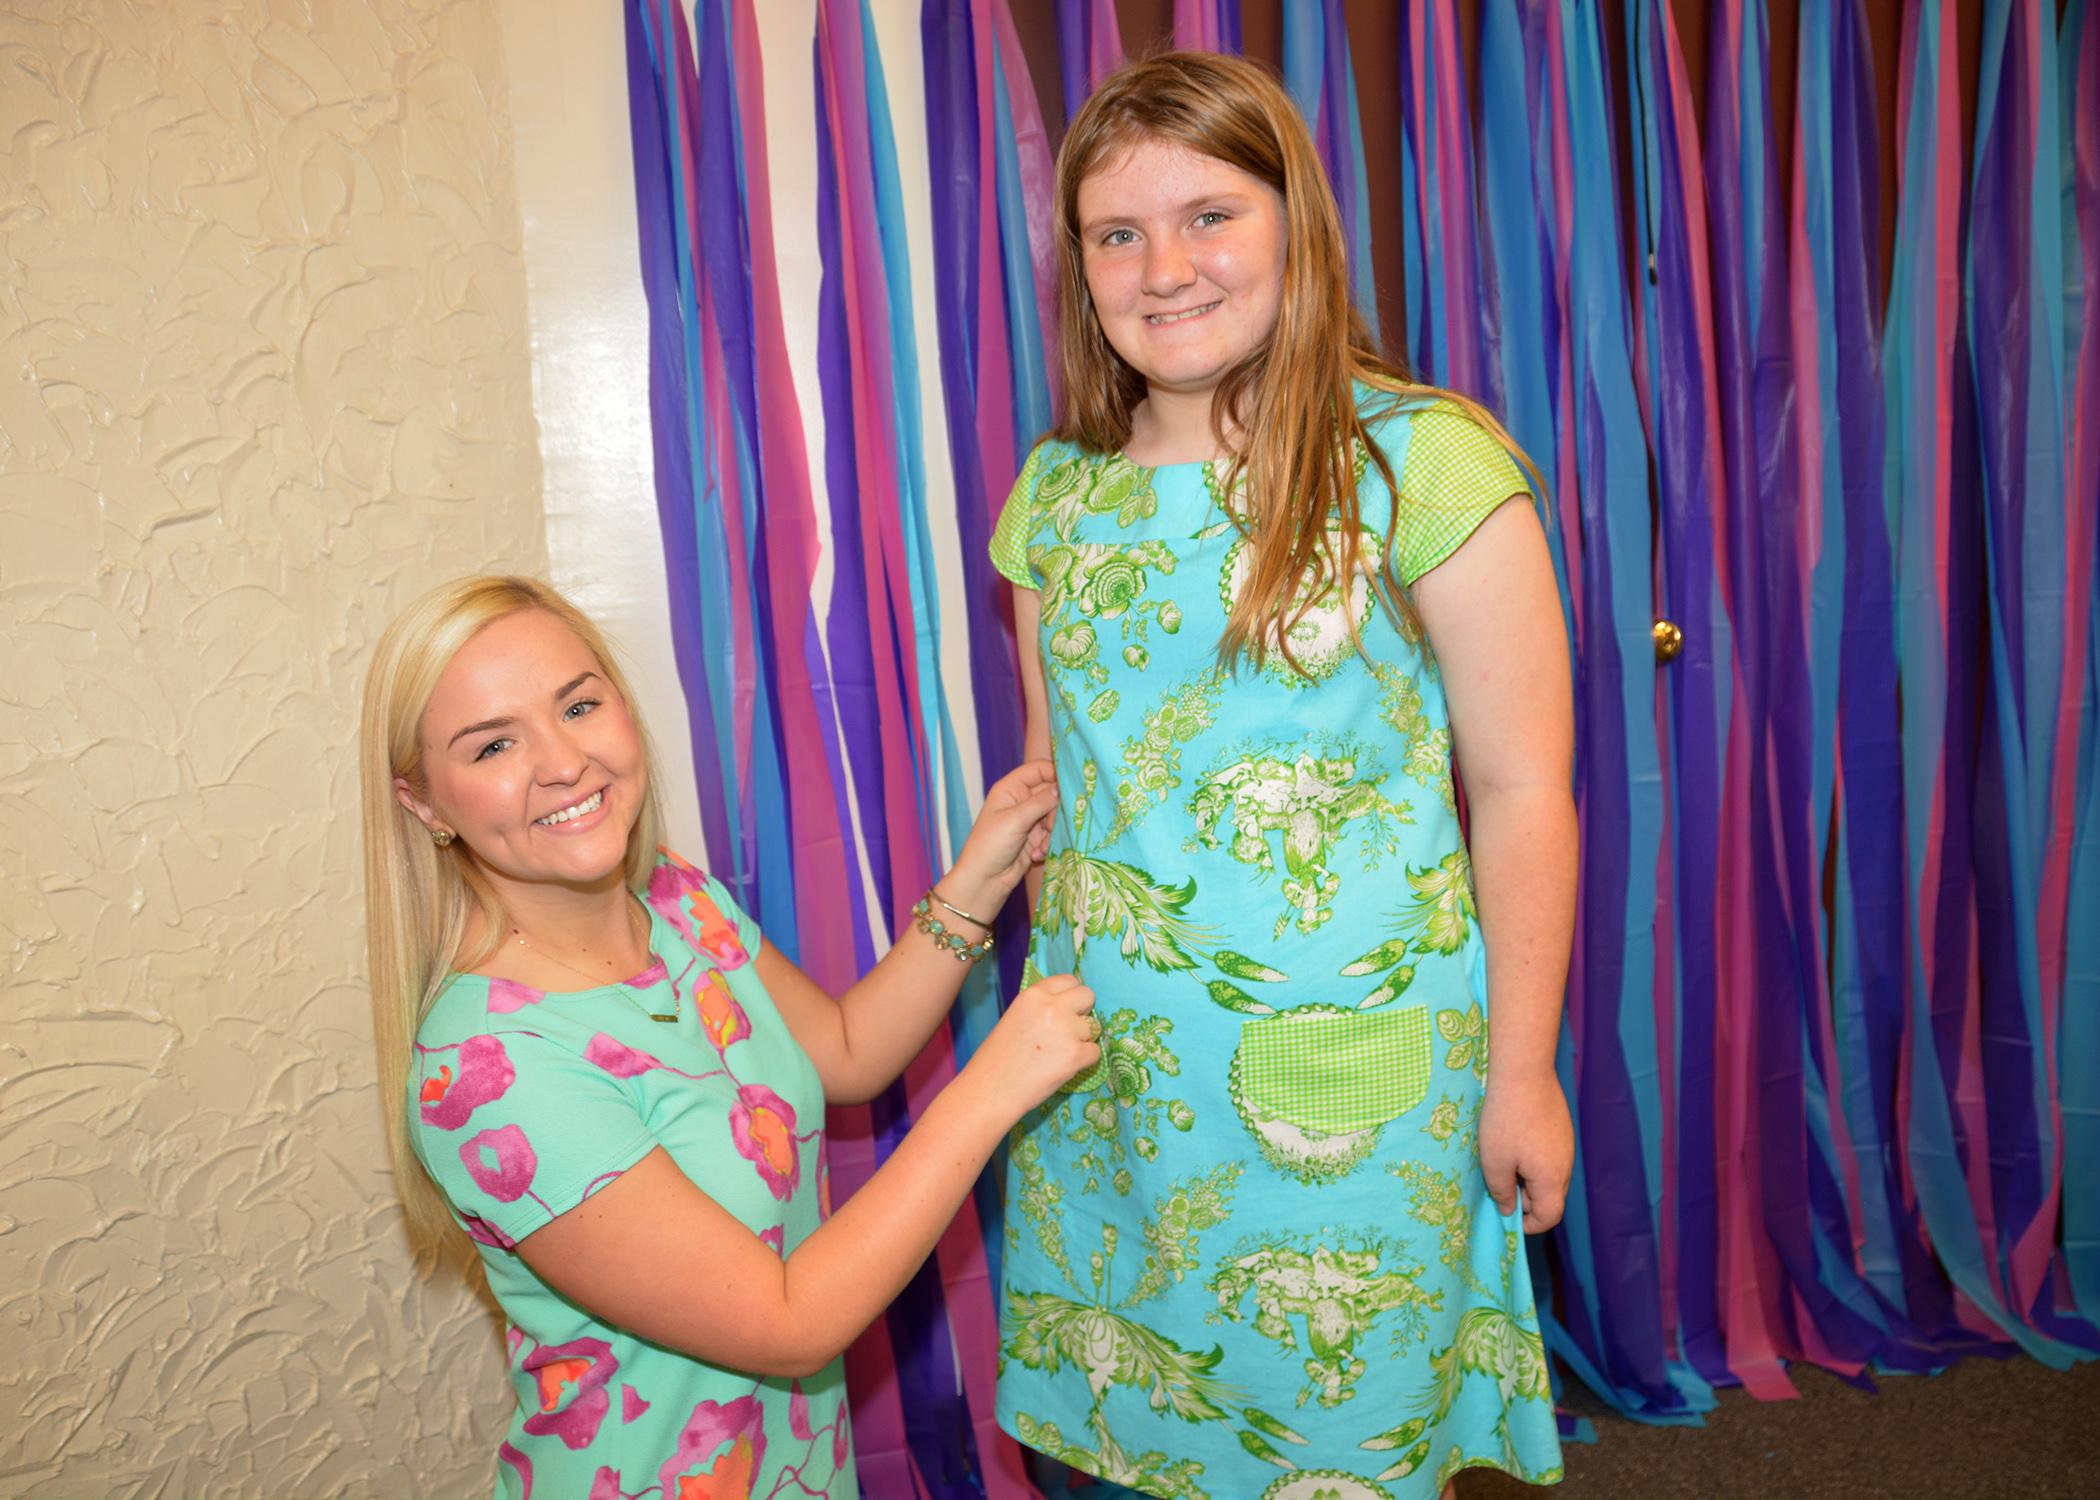 Mississippi State University fashion design and merchandising major Kelsie Bynum of Laurel inspects the dress she constructed for Oktibbeha County 4-H member Cassin Gant before a special fashion show in Starkville, Mississippi, on May 2, 2015. (Photo by MSU Ag Communications/Linda Breazeale)